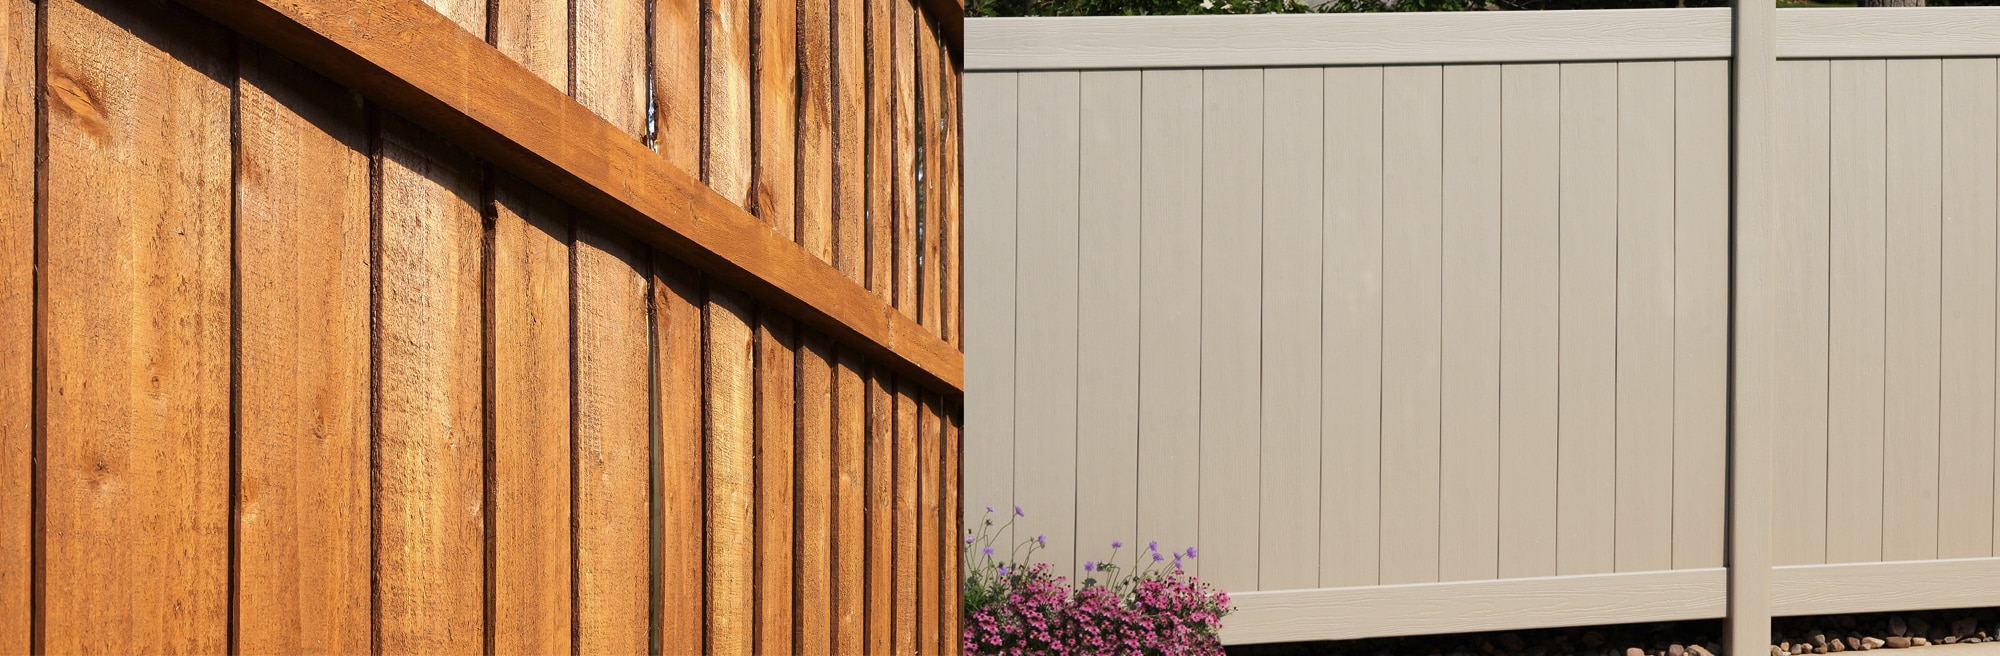 Wood Fencing vs. Vinyl Fencing | Fencing Compared